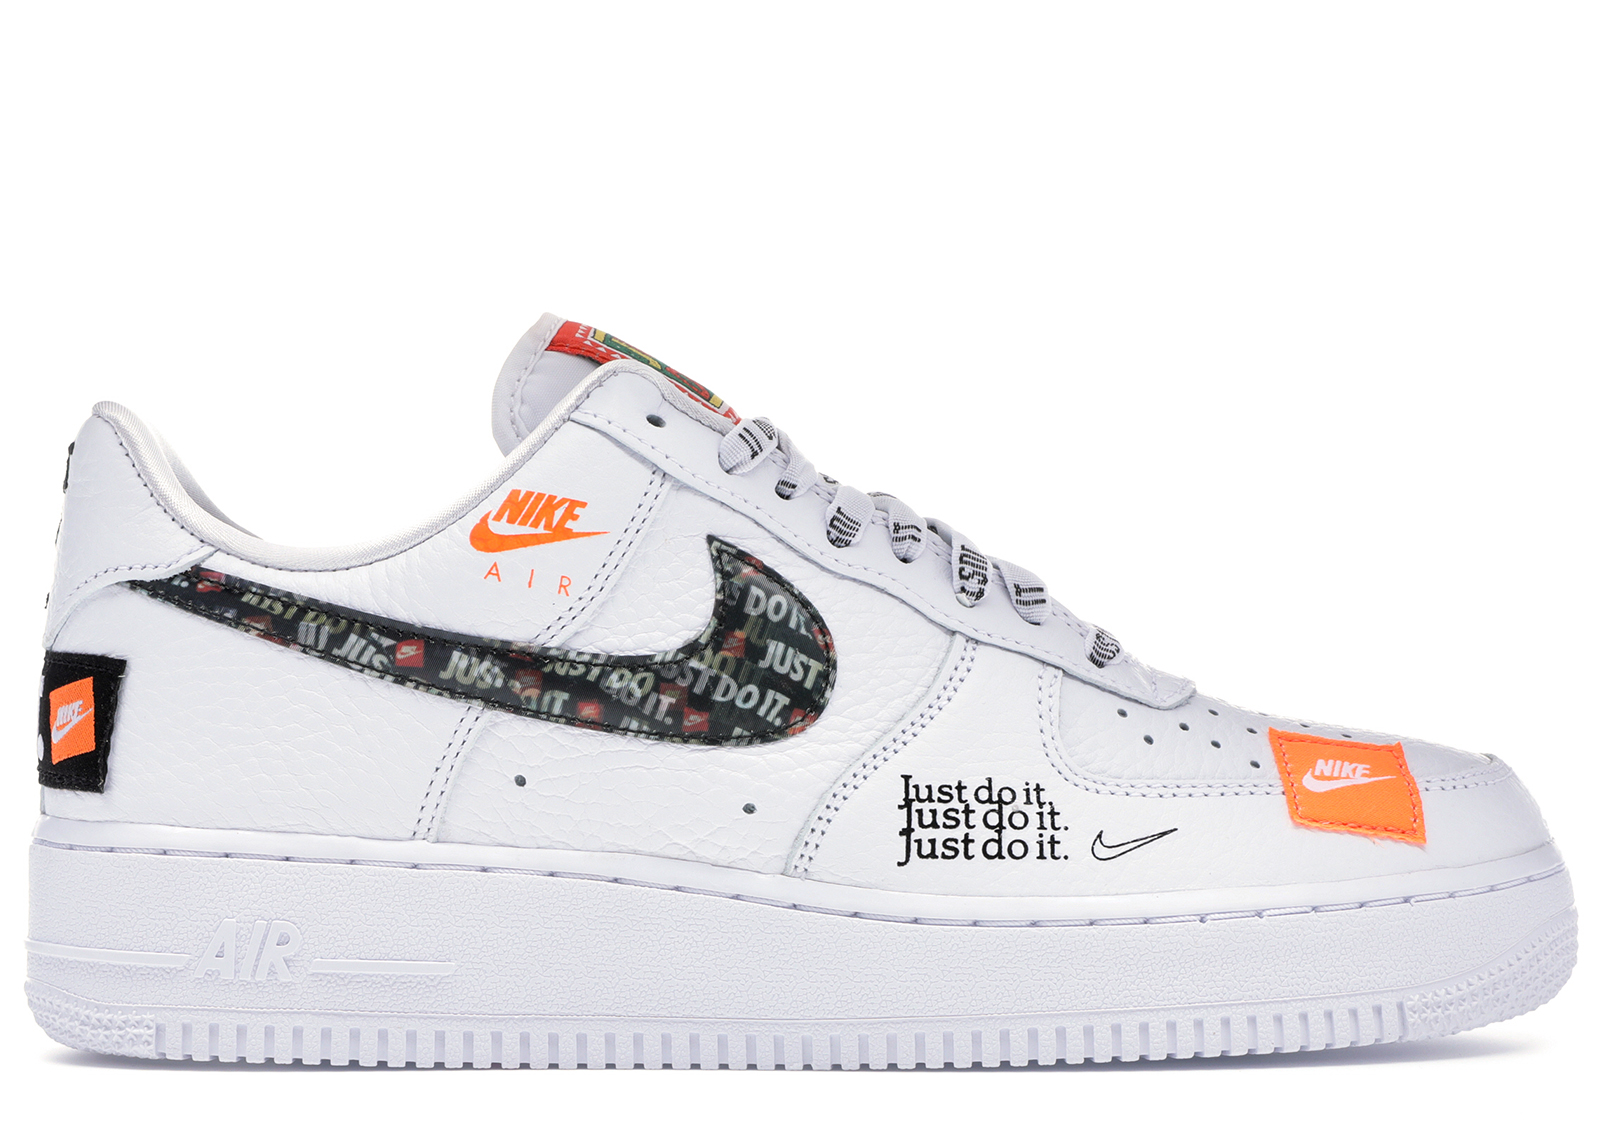 nike air force 1 07 femme blanche et orange